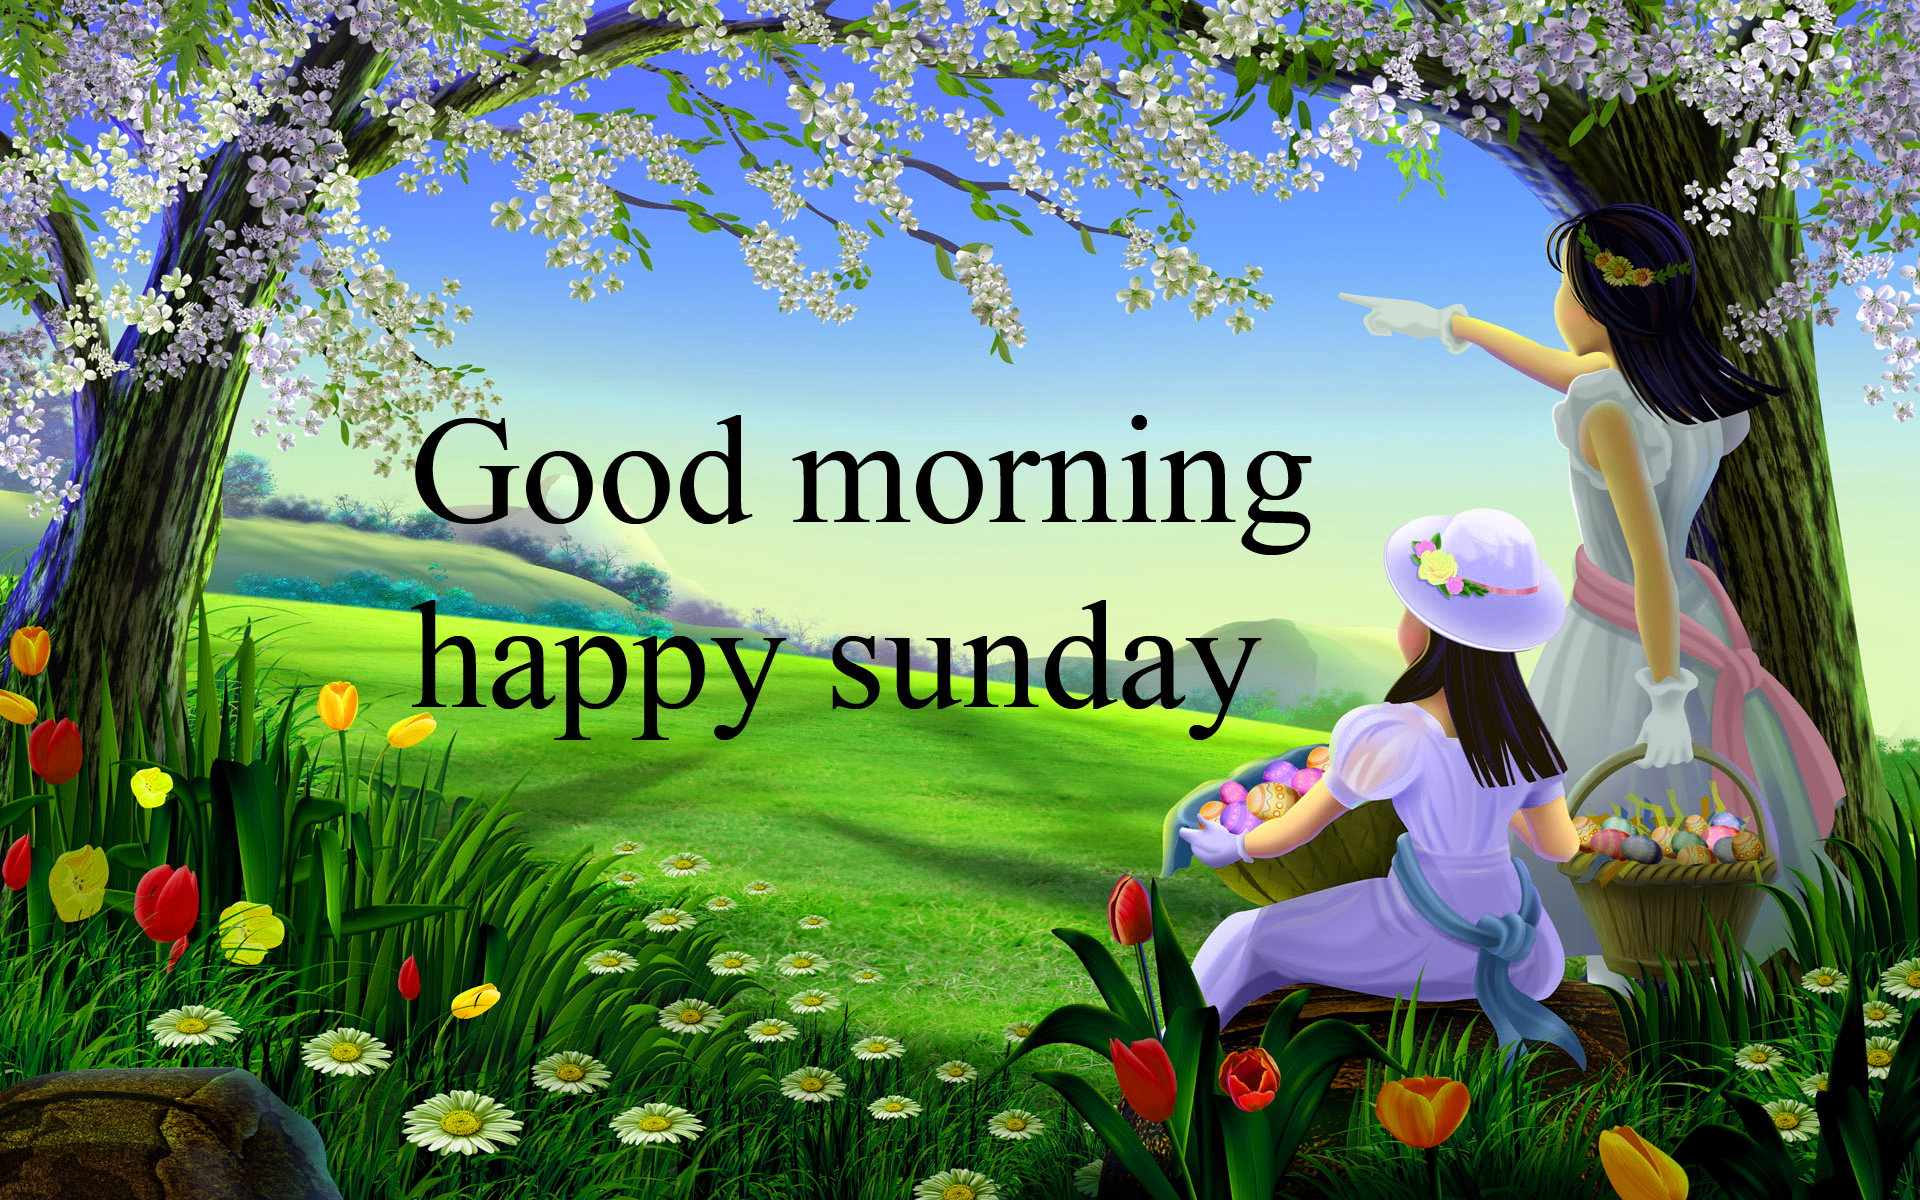 Sunday Good Morning Images Wallpaper Photo Free HD